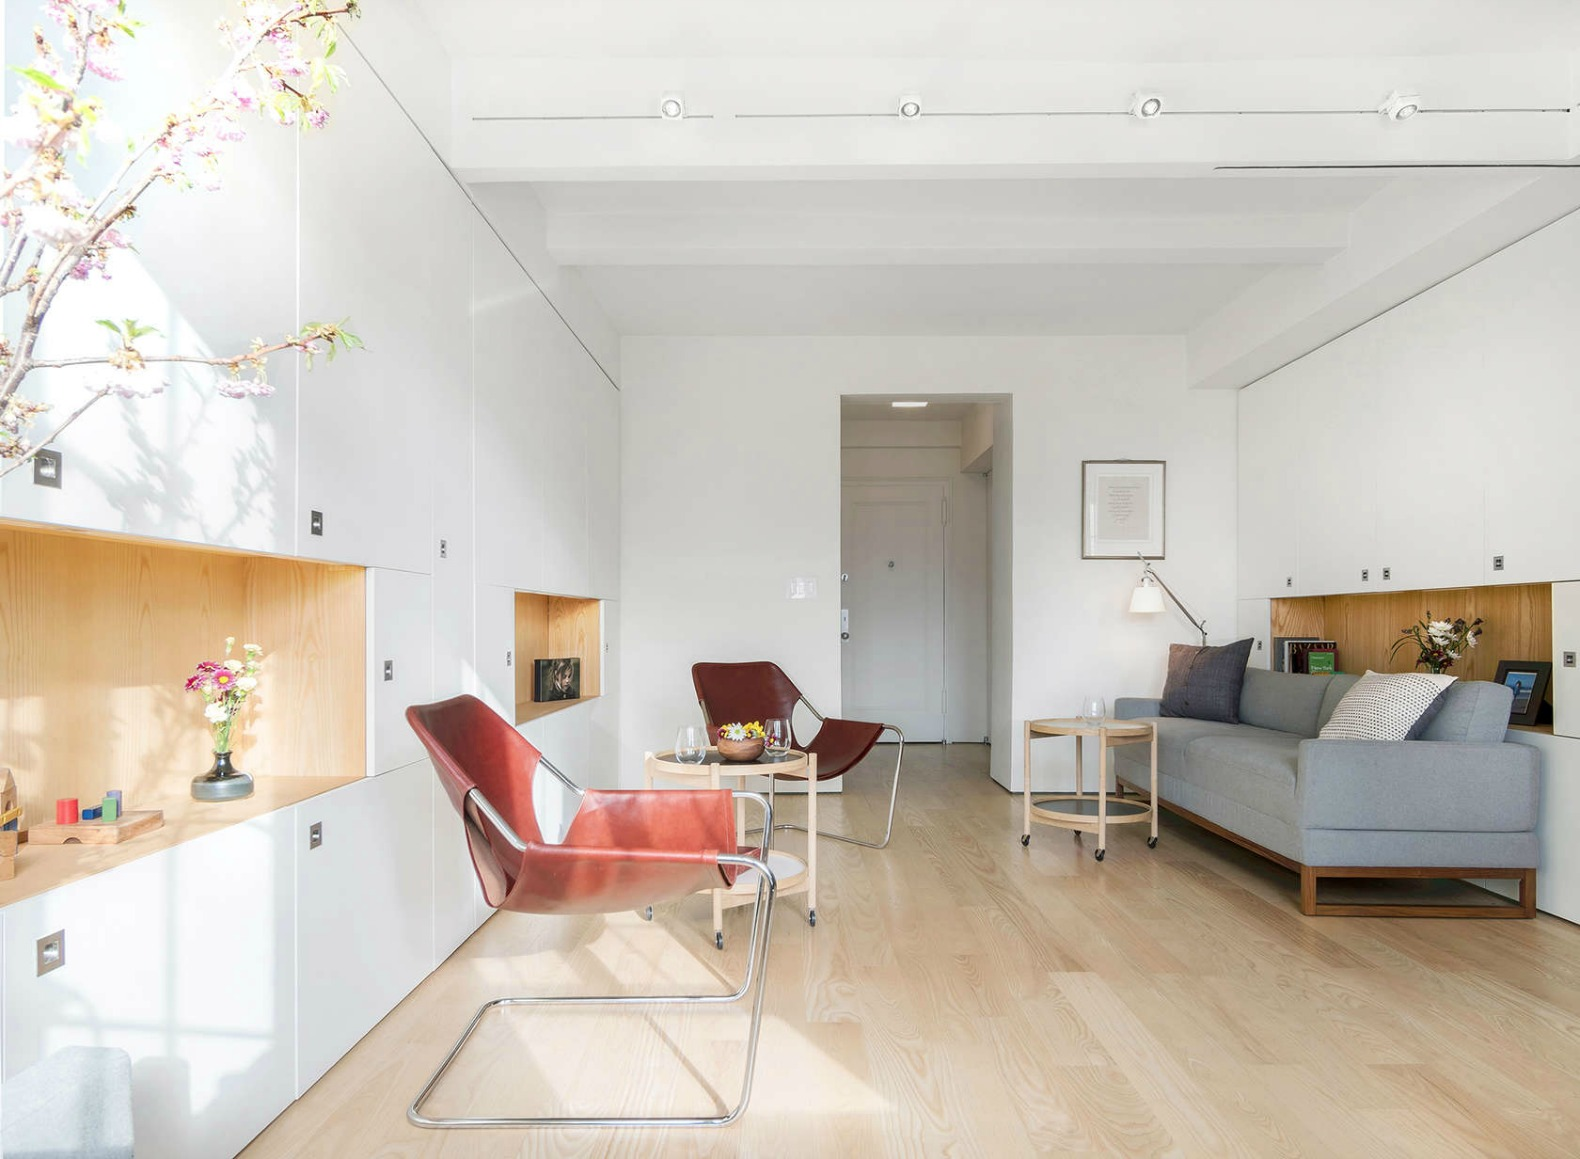 400-square-foot apartment uses clever pivot wall to divide space in multiple ways